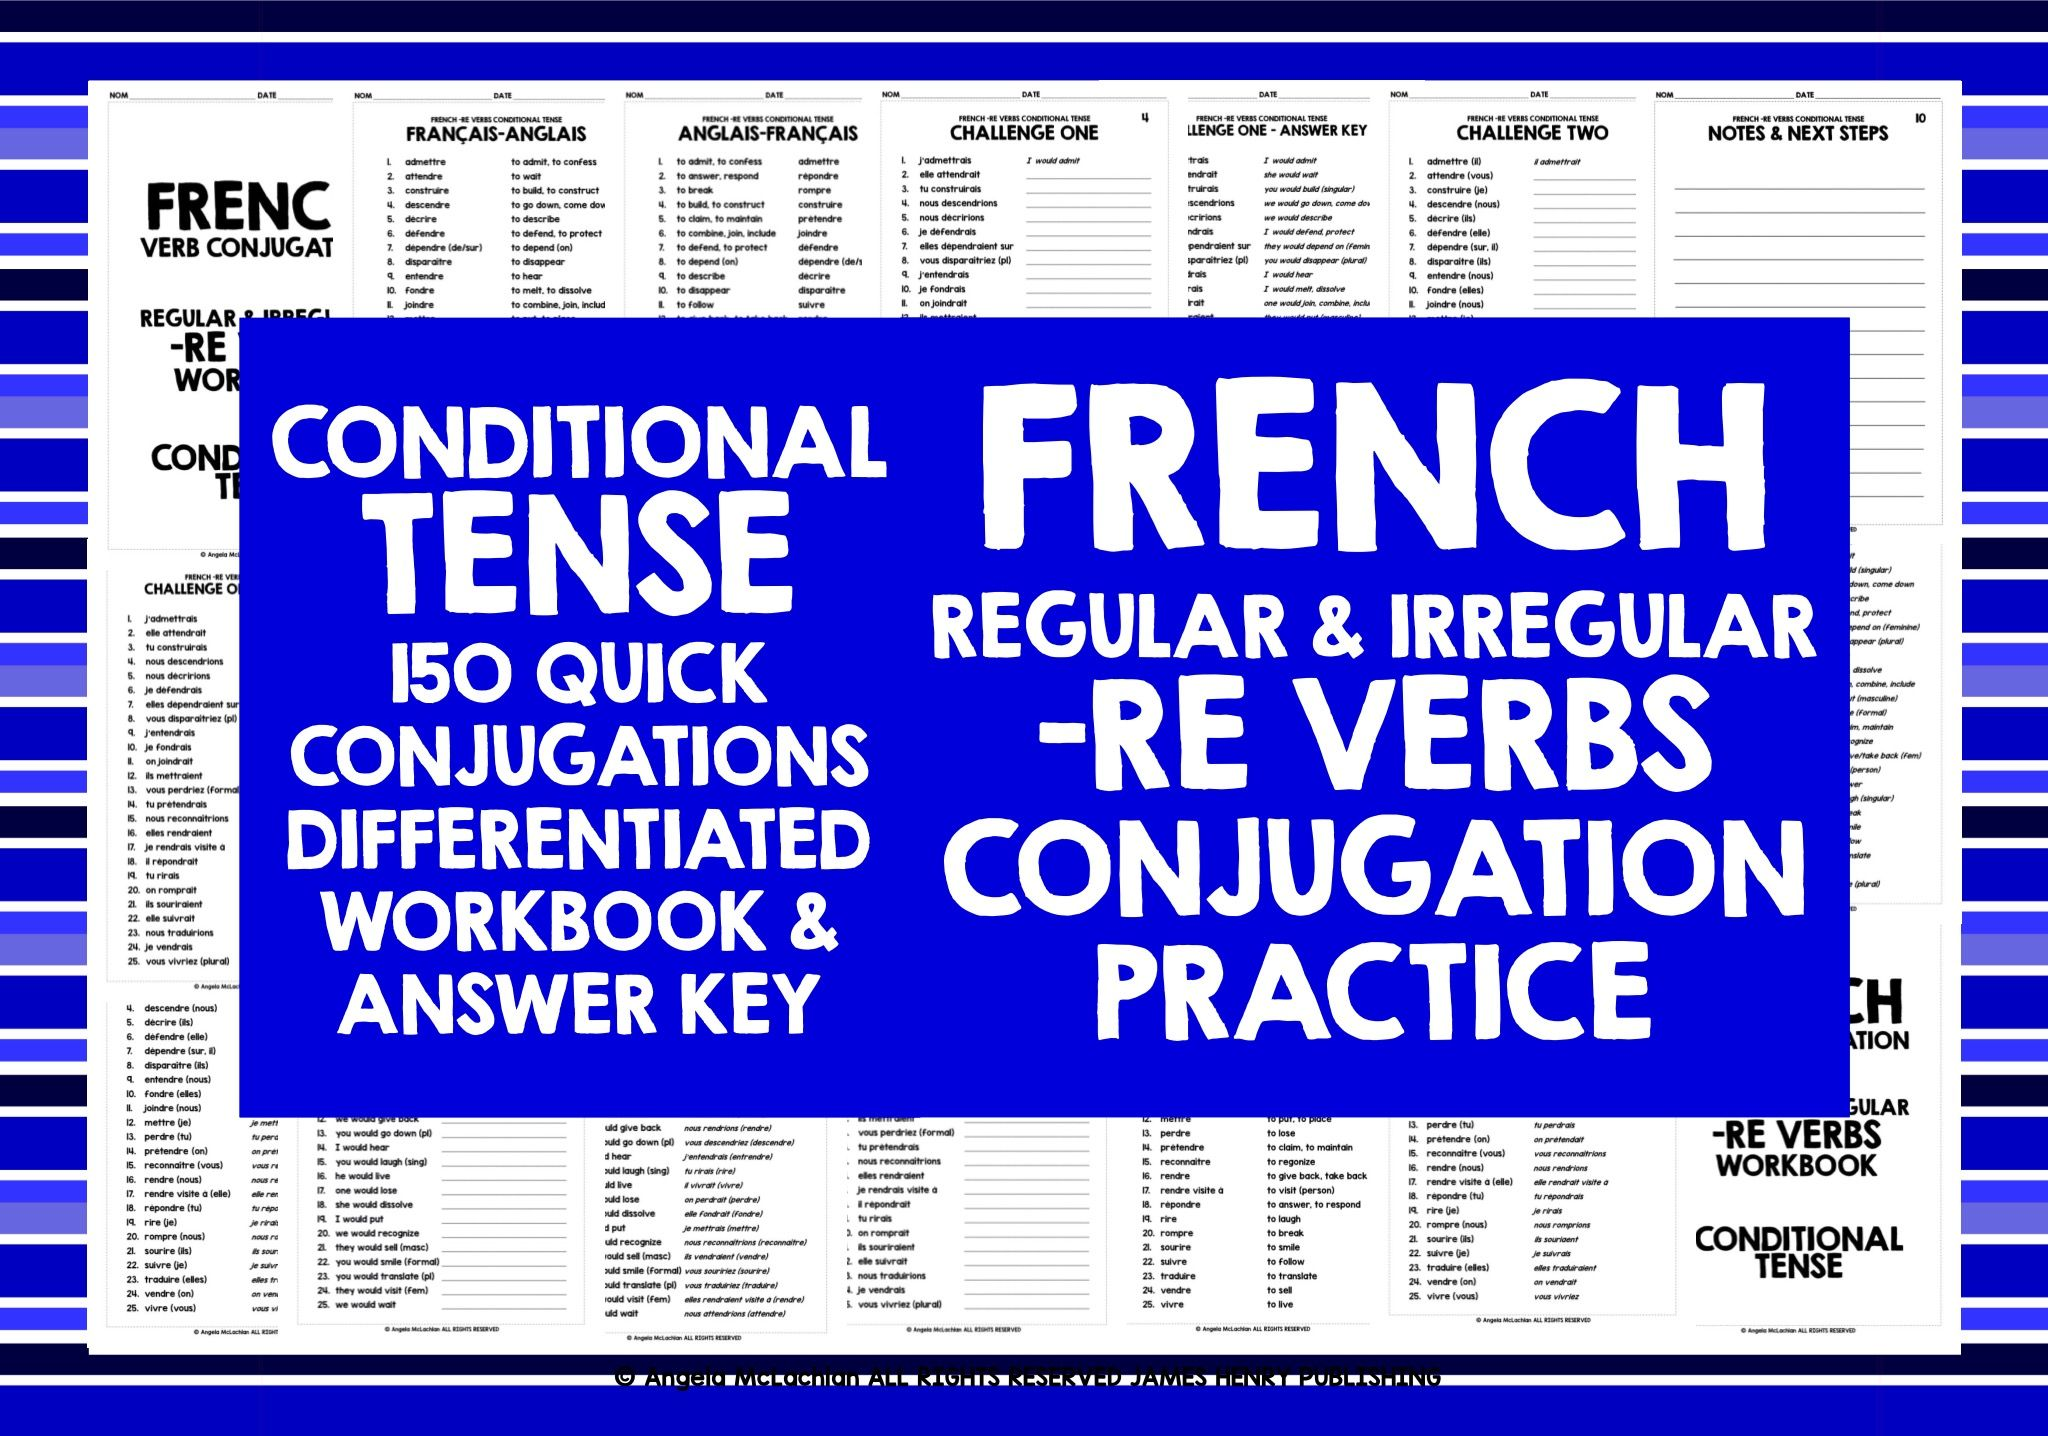 French Re Verbs Conditional Tense